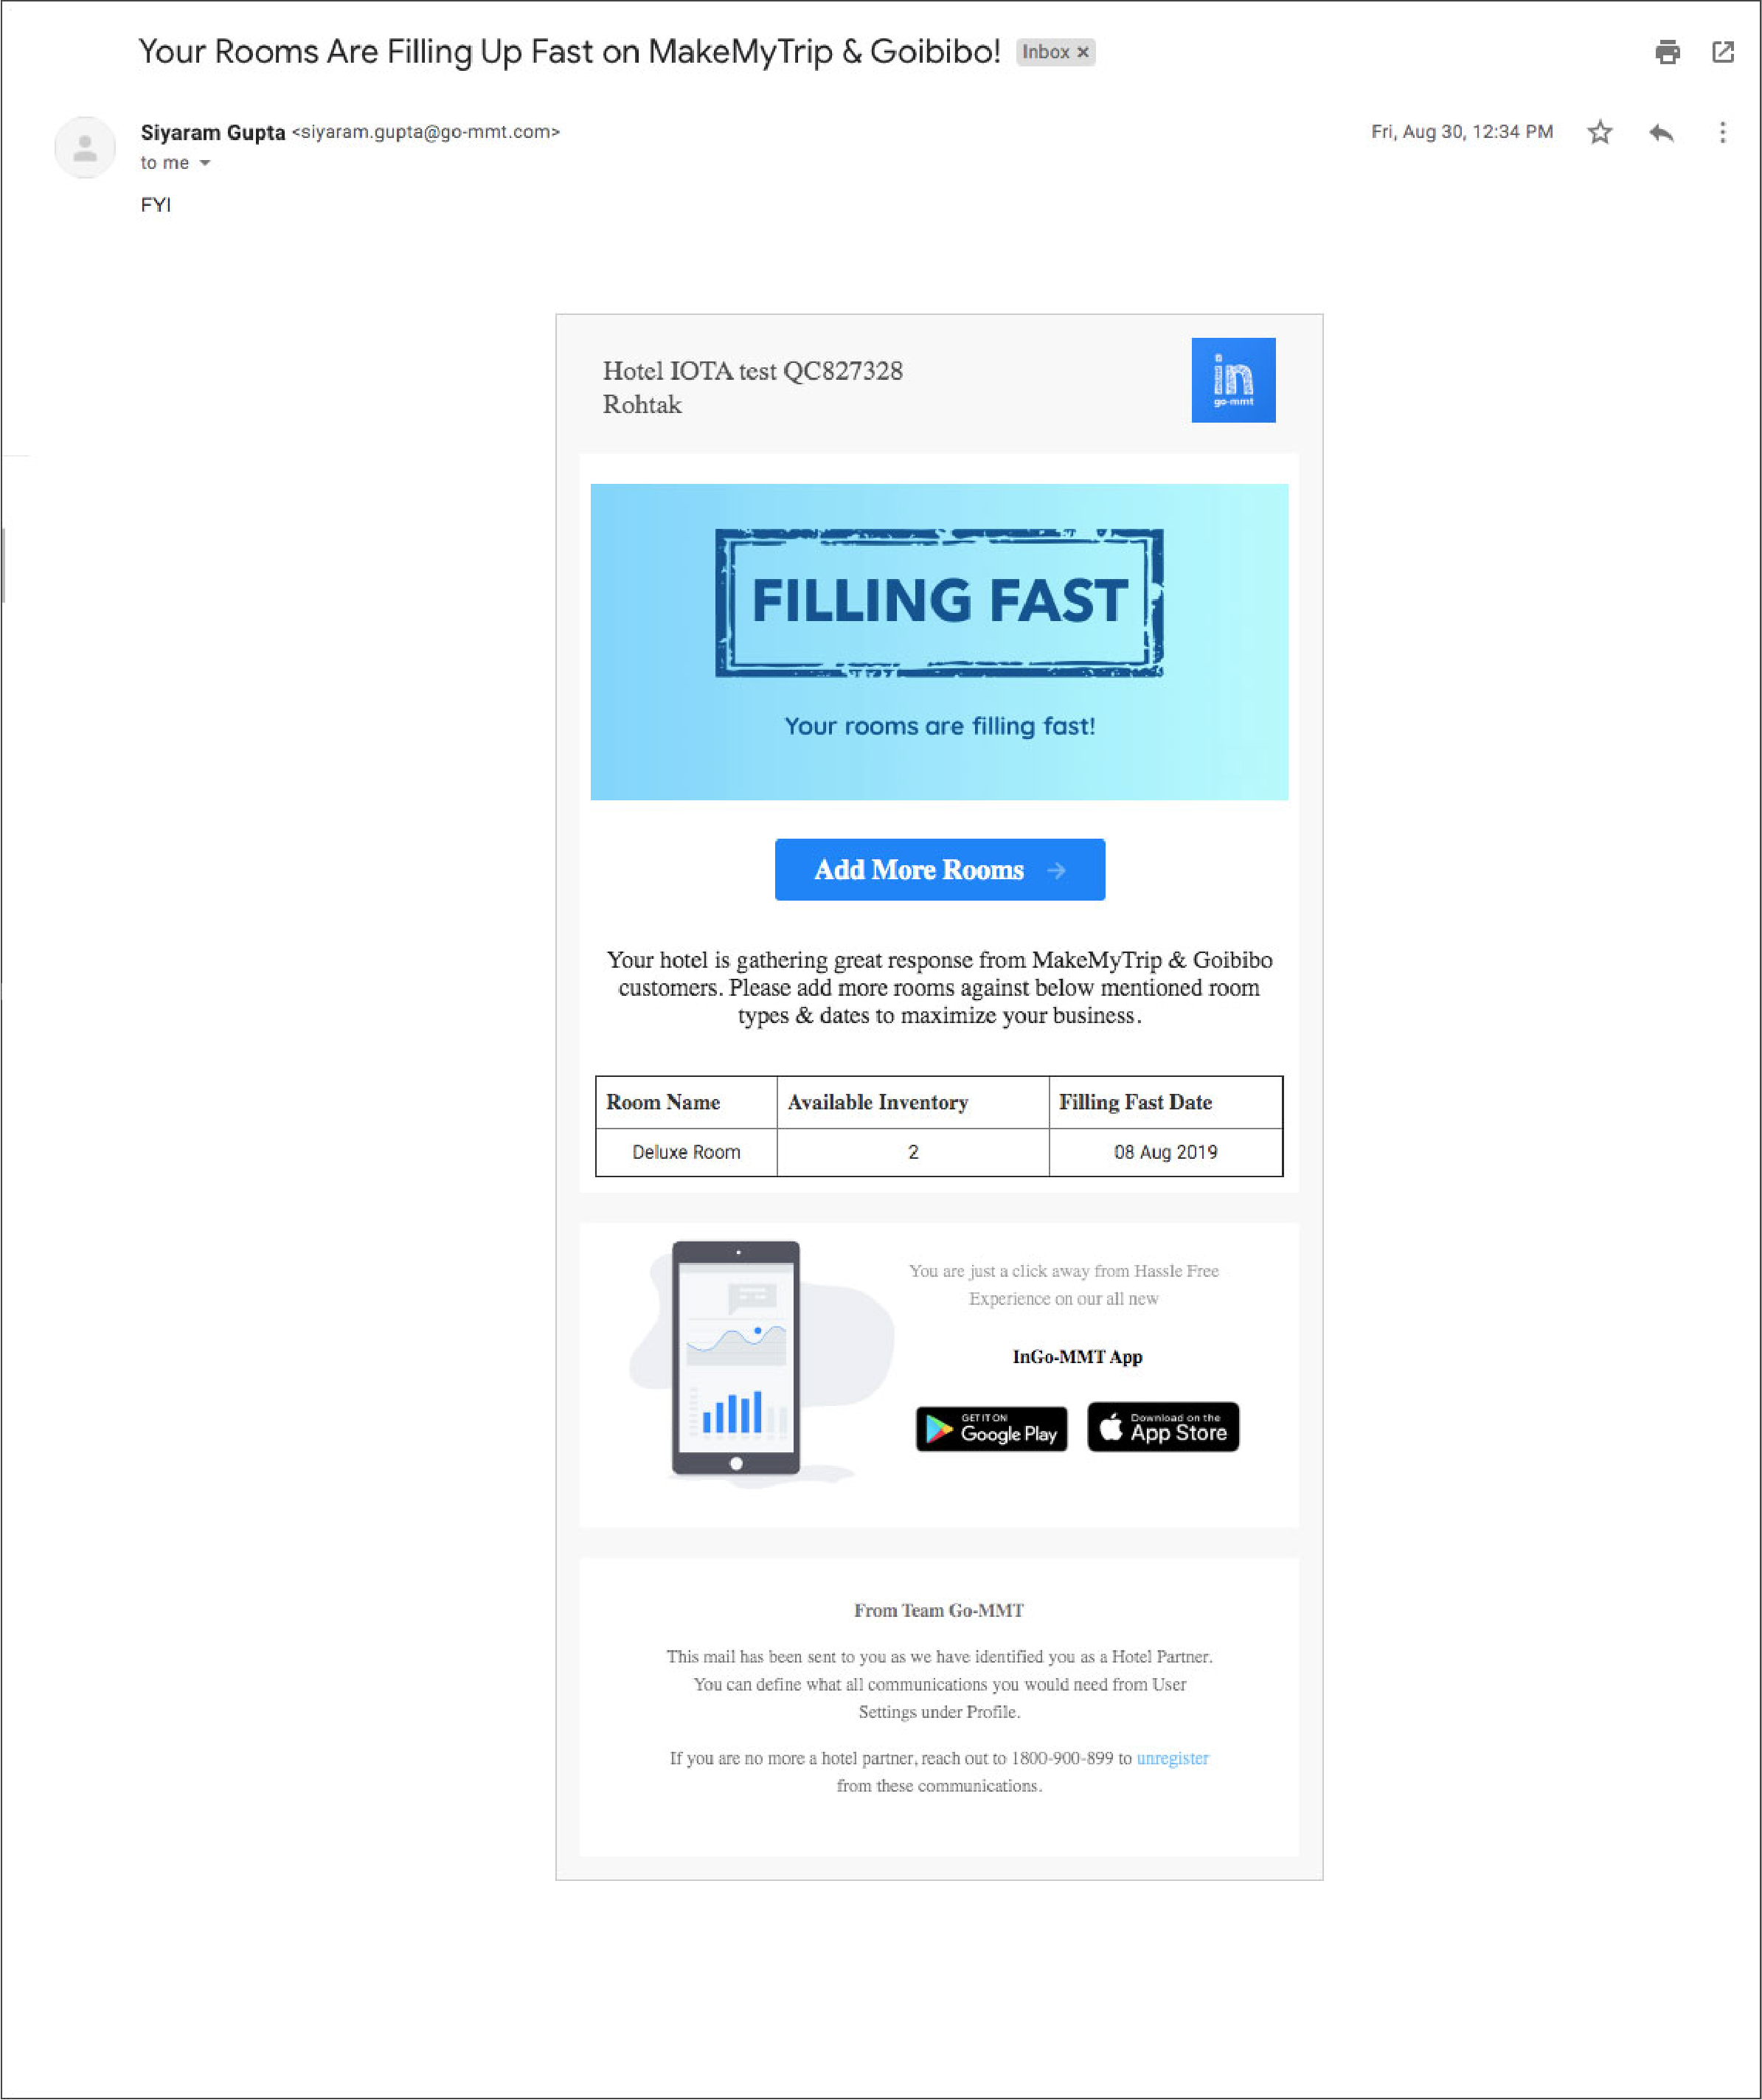 Go-MMT Email Campaign